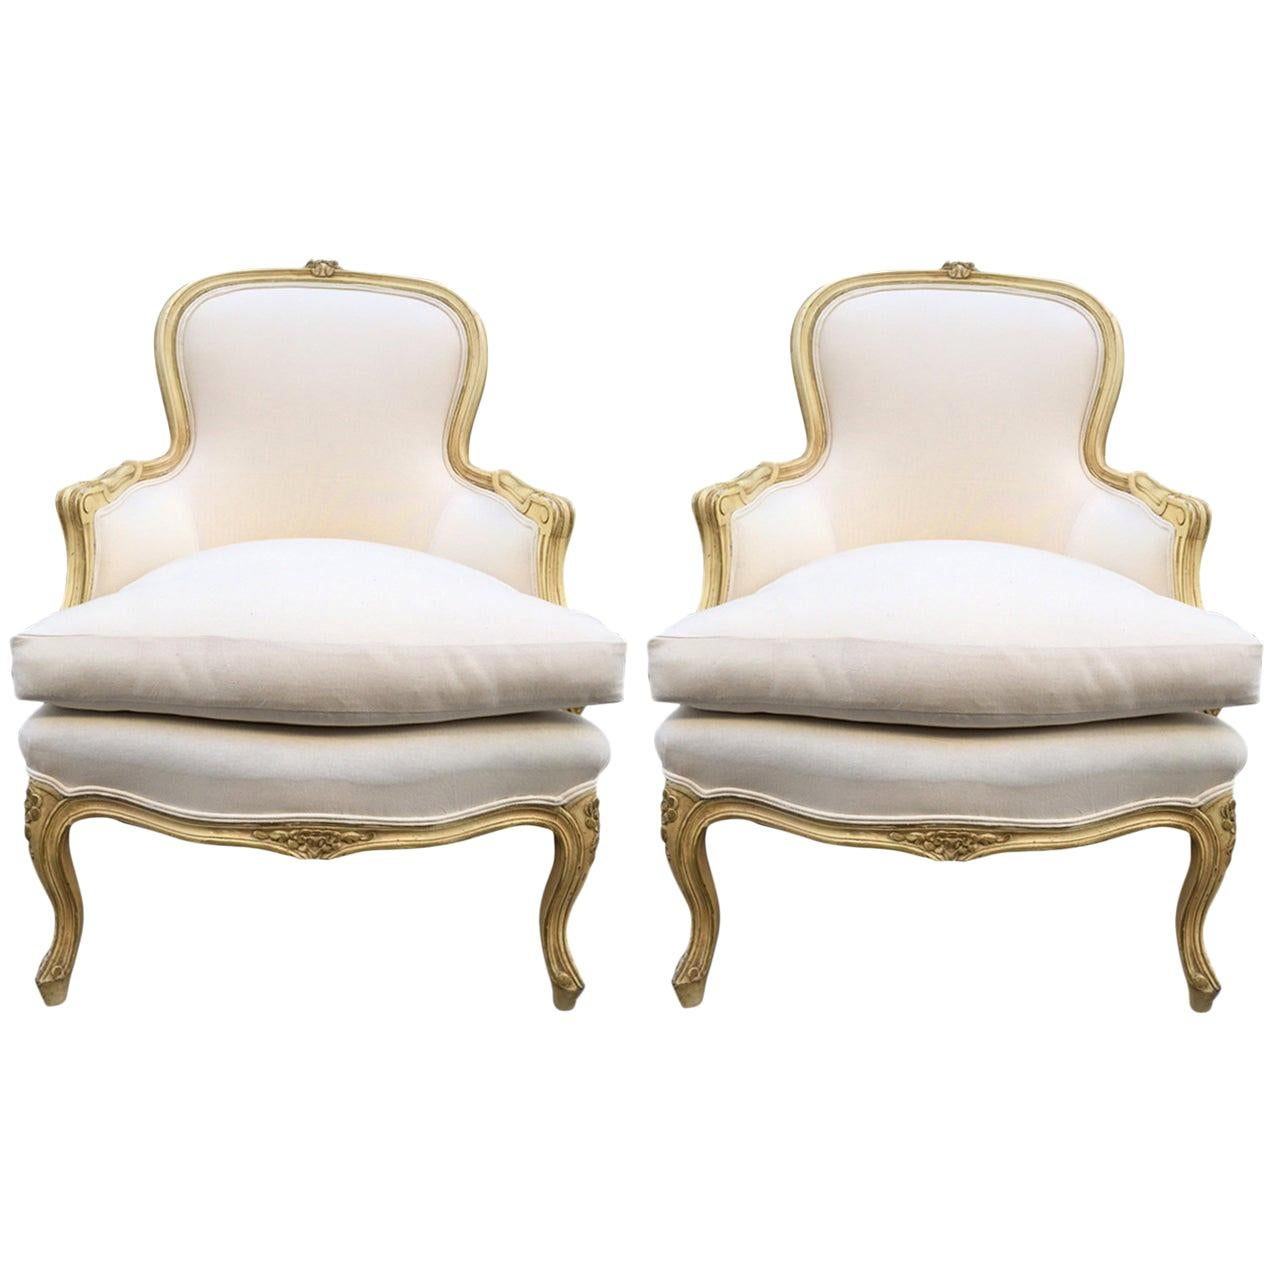 Pair of French Louis XV Style Bergère Chairs